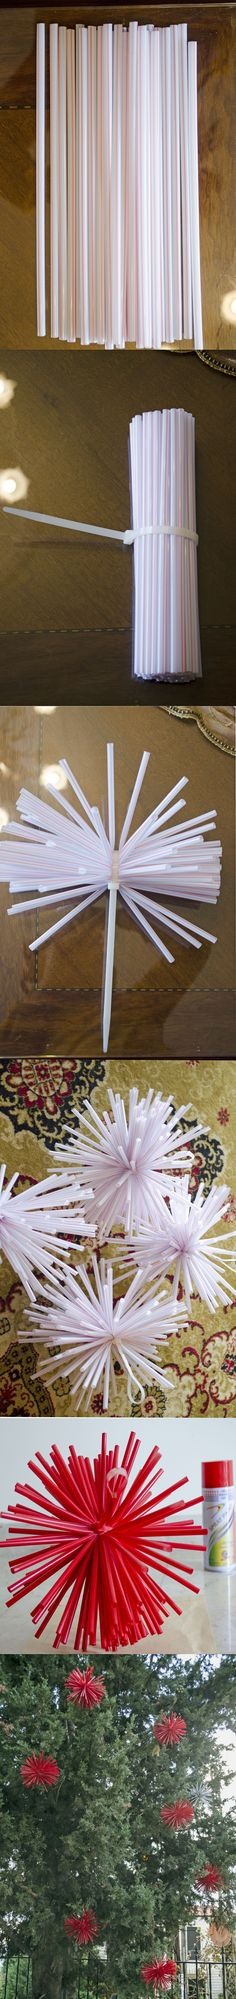 or use any color of straws for garden party decoration